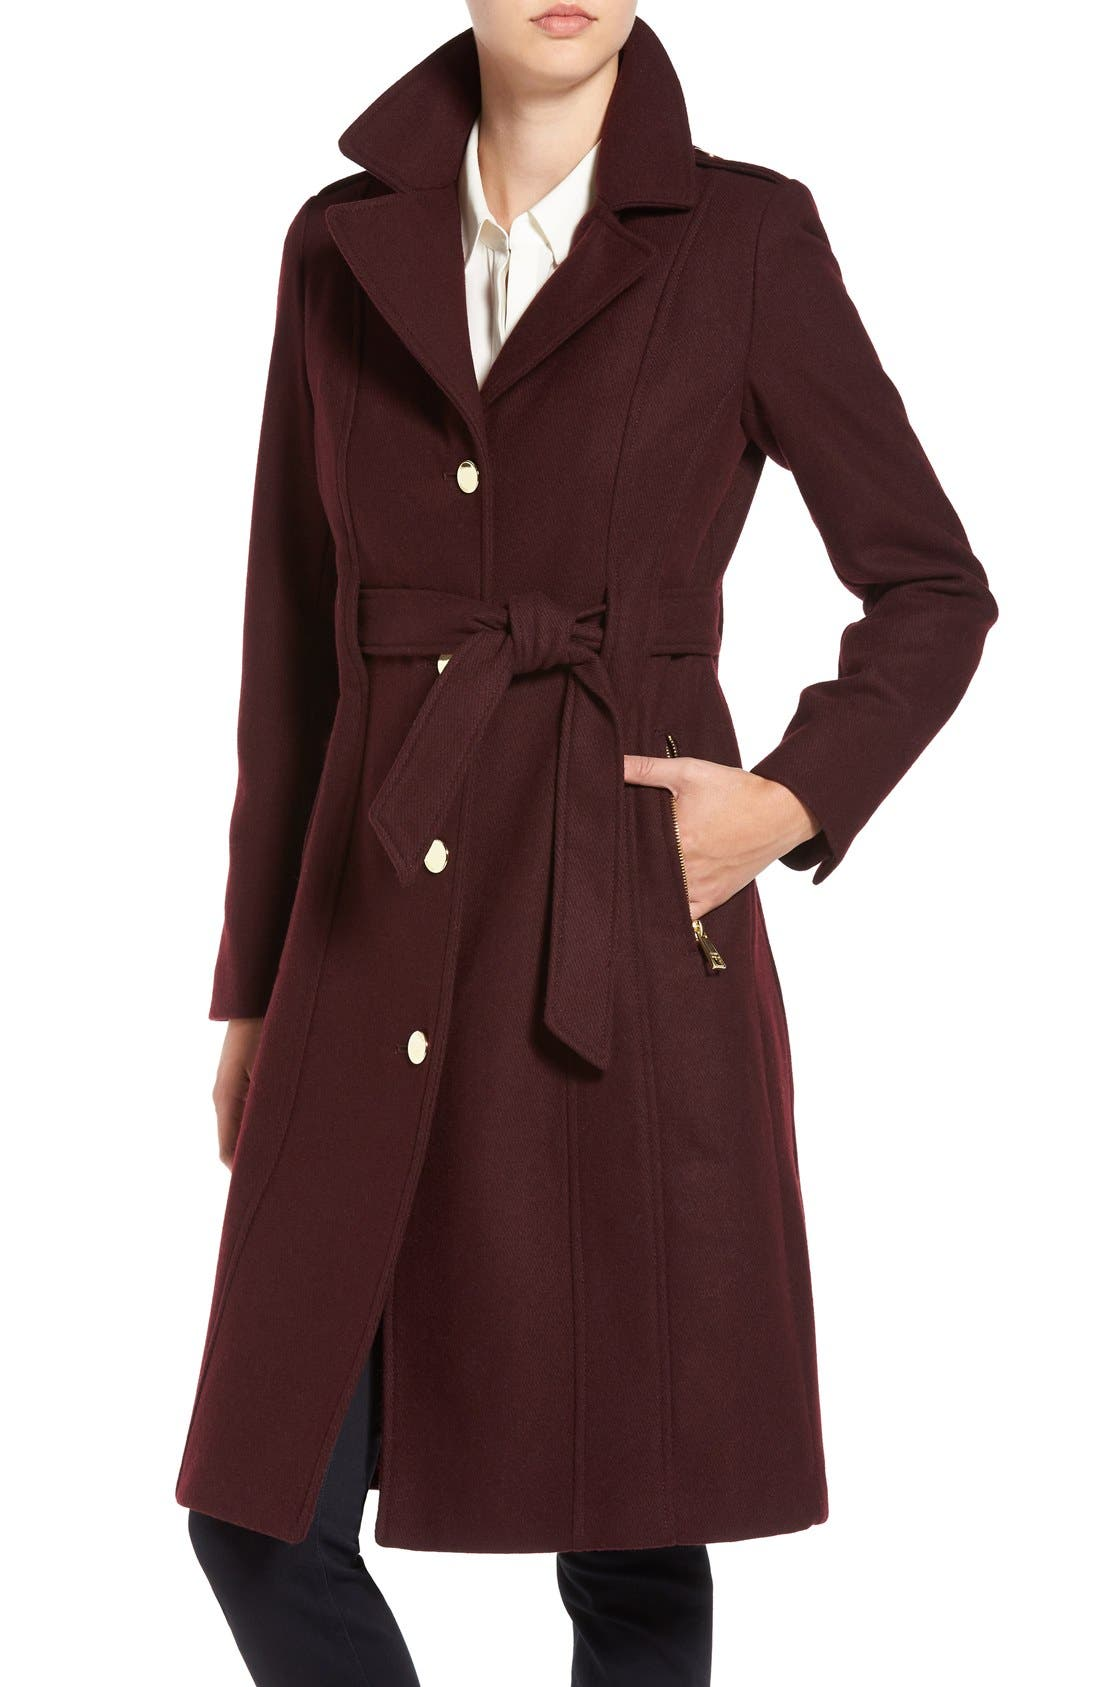 GUESS,                             Trench Coat with Faux Fur Trim,                             Alternate thumbnail 4, color,                             240